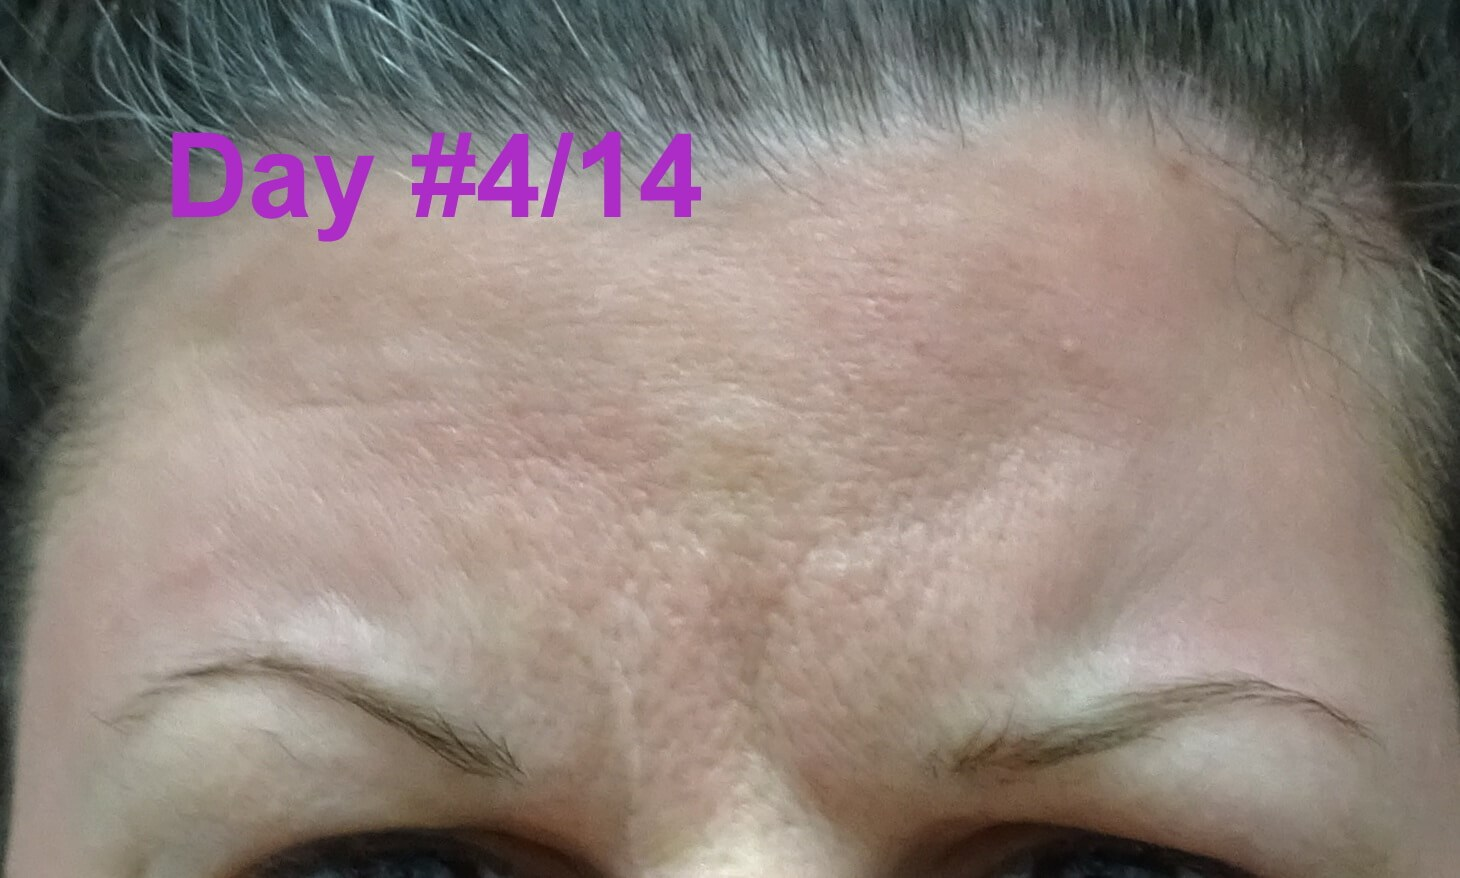 Botox Day #4/14--frowning EXCELLENT After ONLY 4 Days